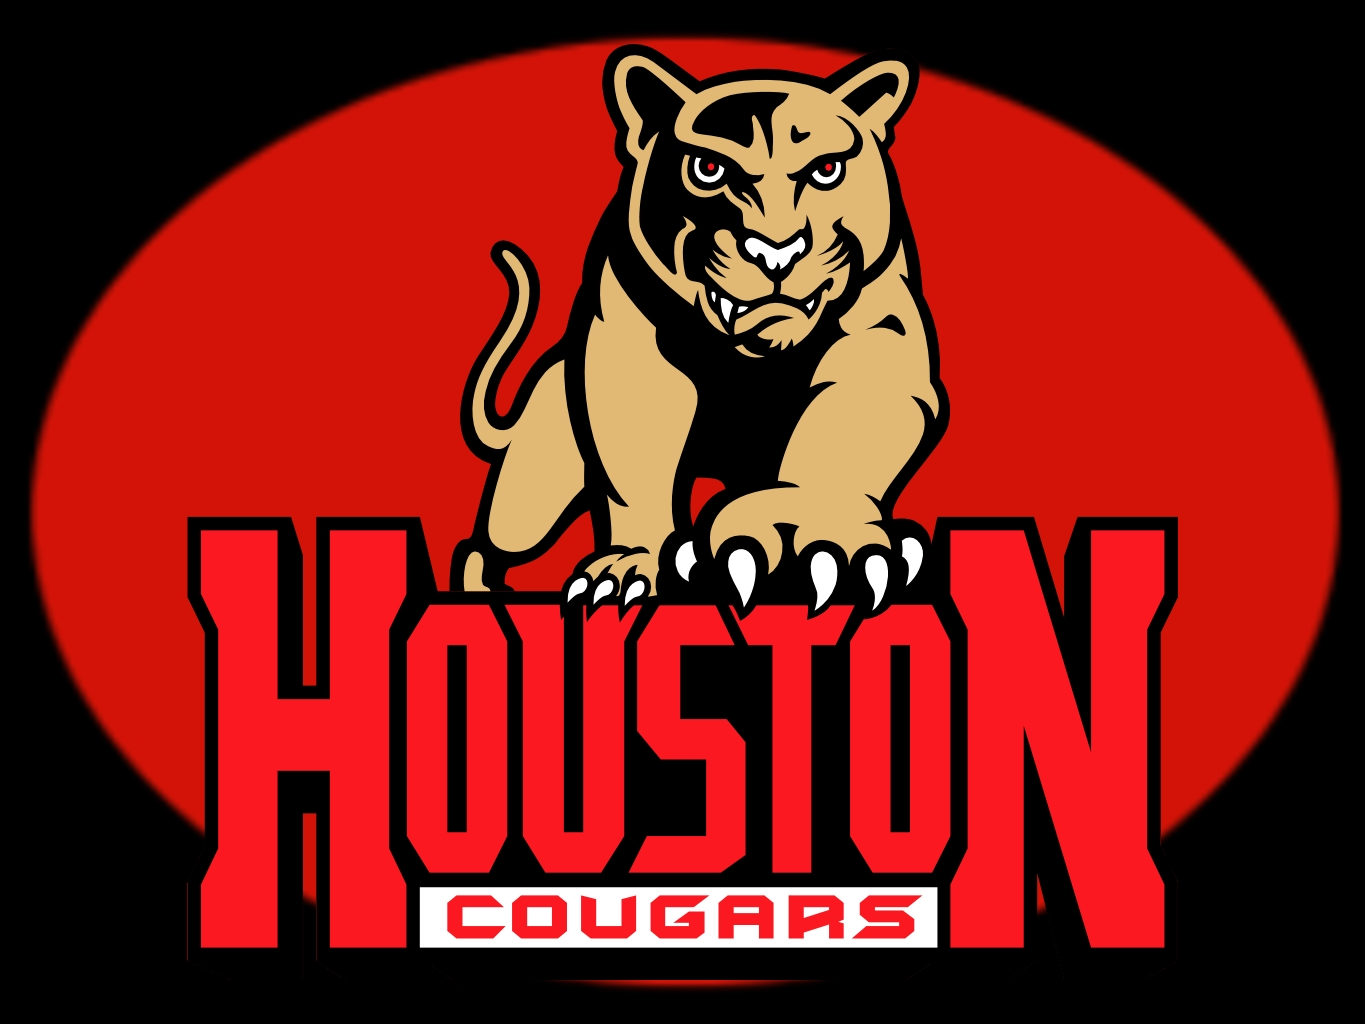 Houston Cougars Tickets